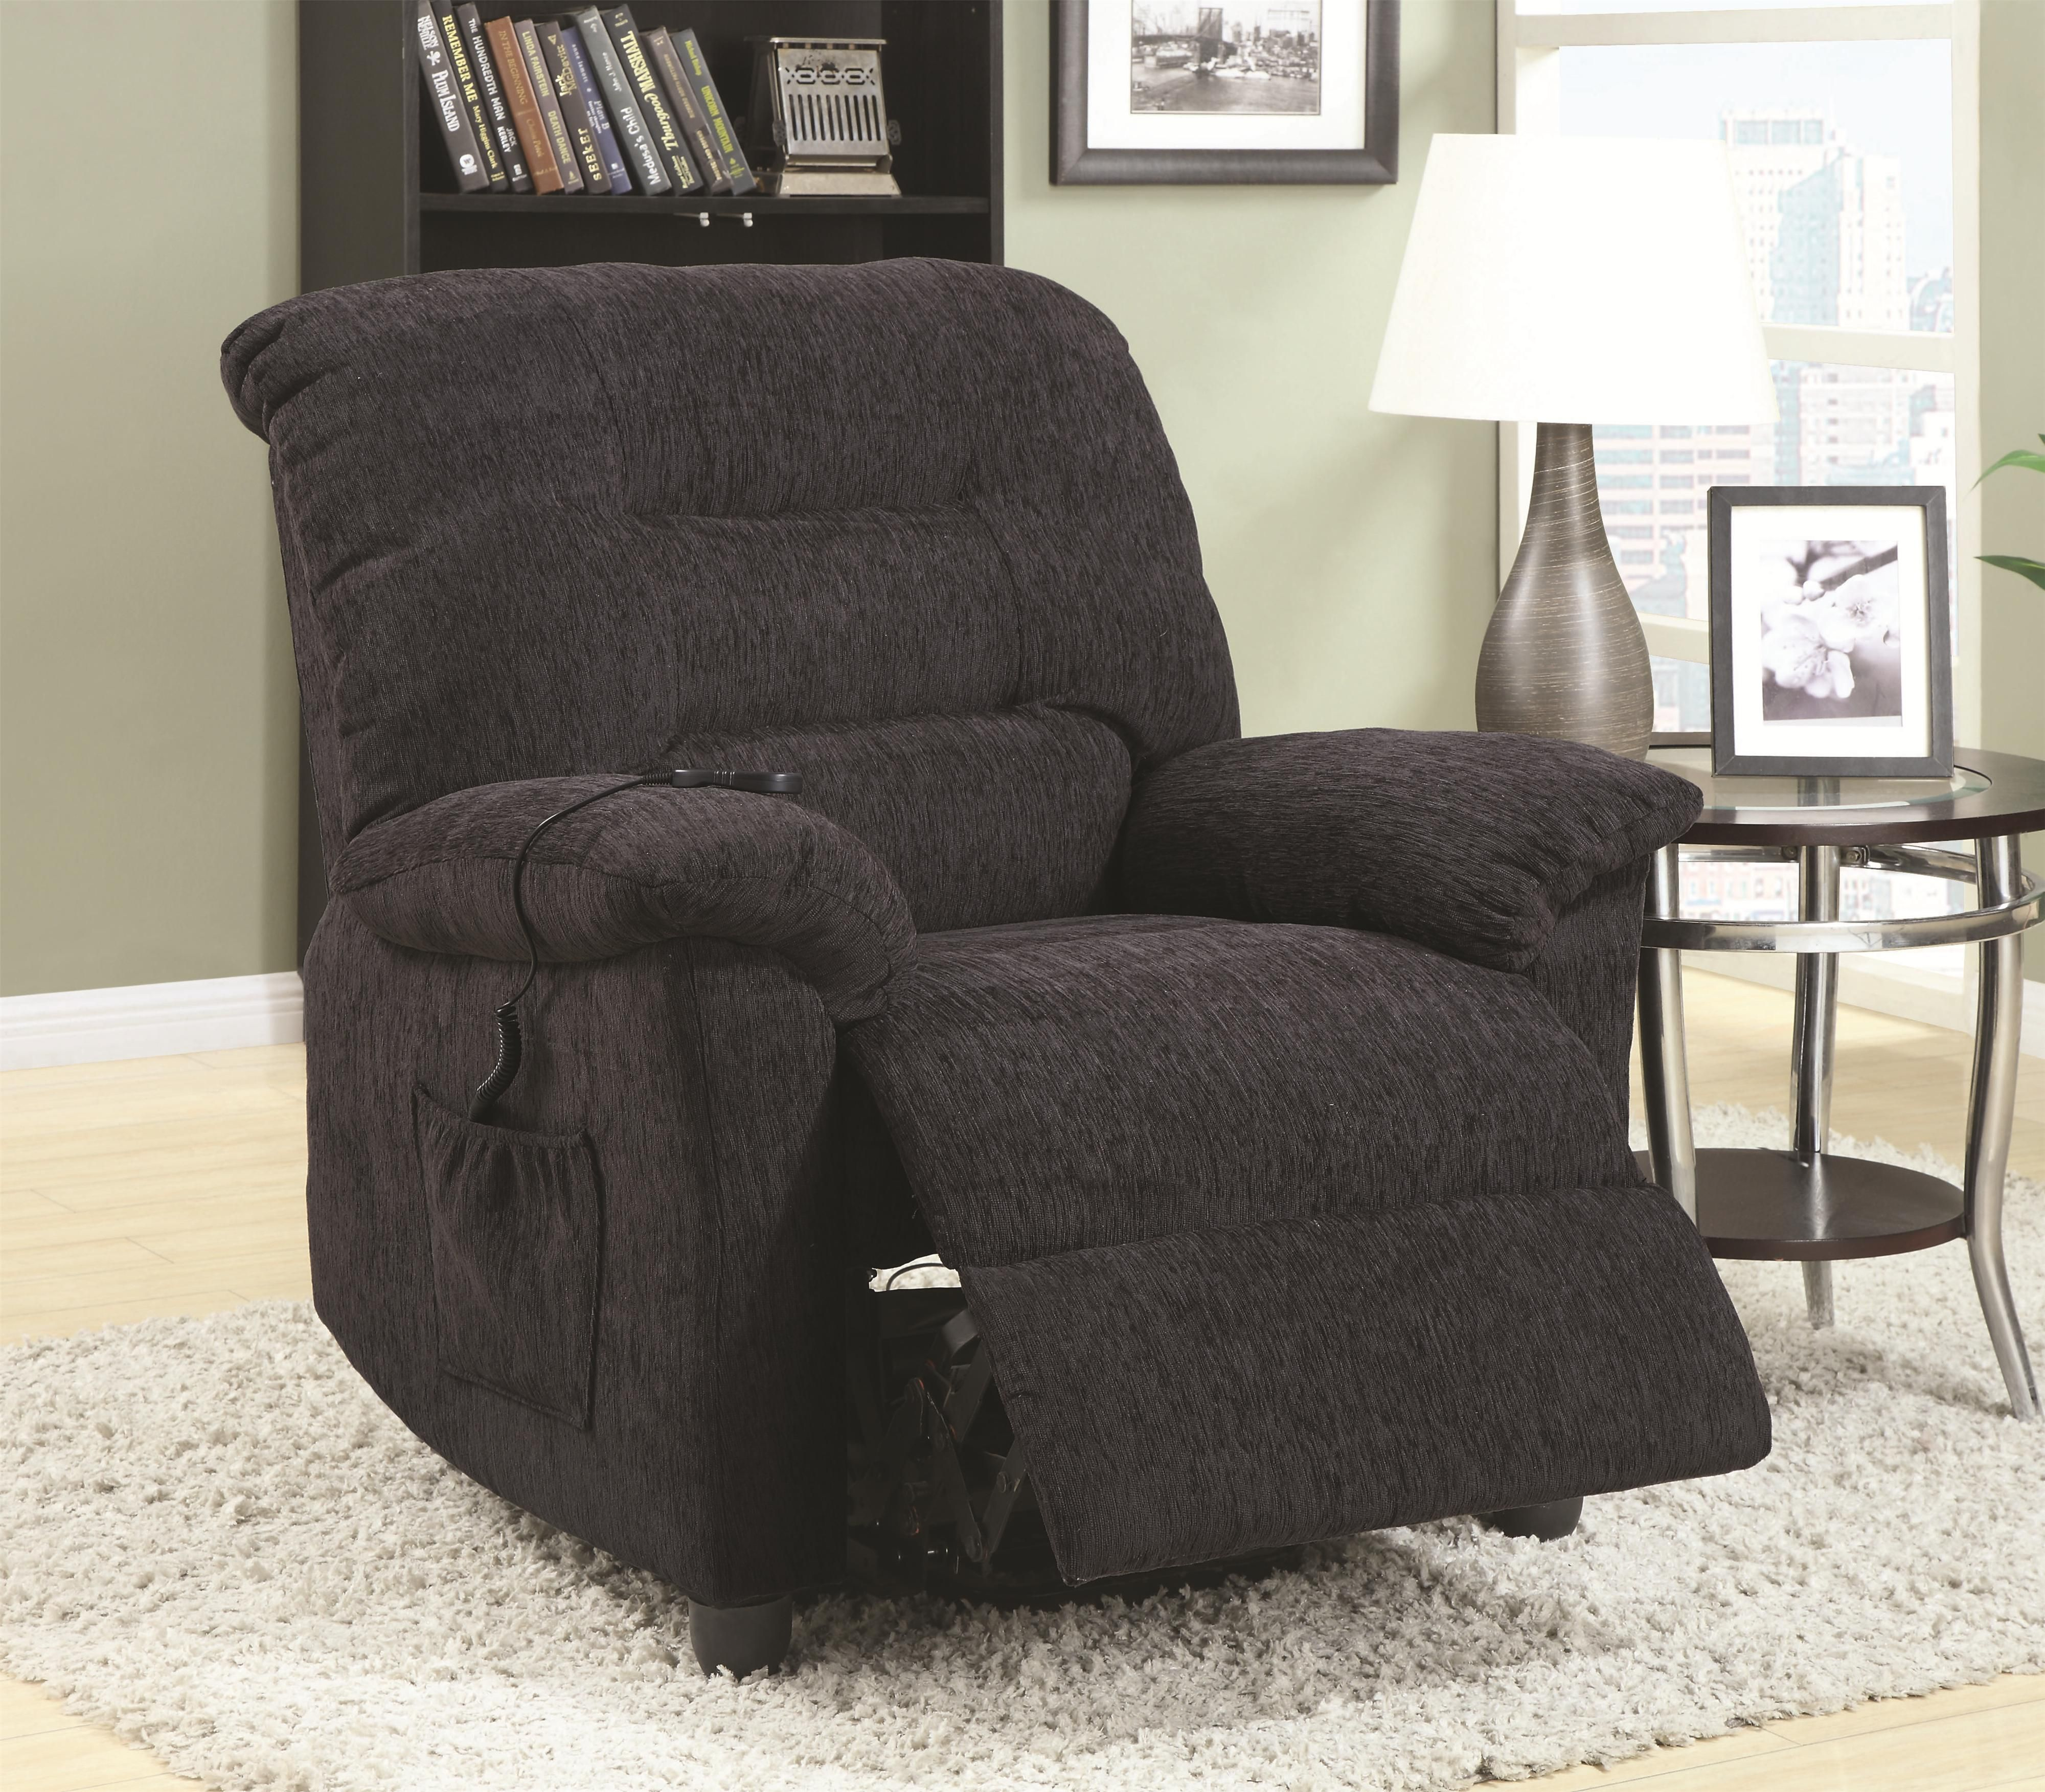 Furniture Store Recliners Power Lift Recliner With Remote Control